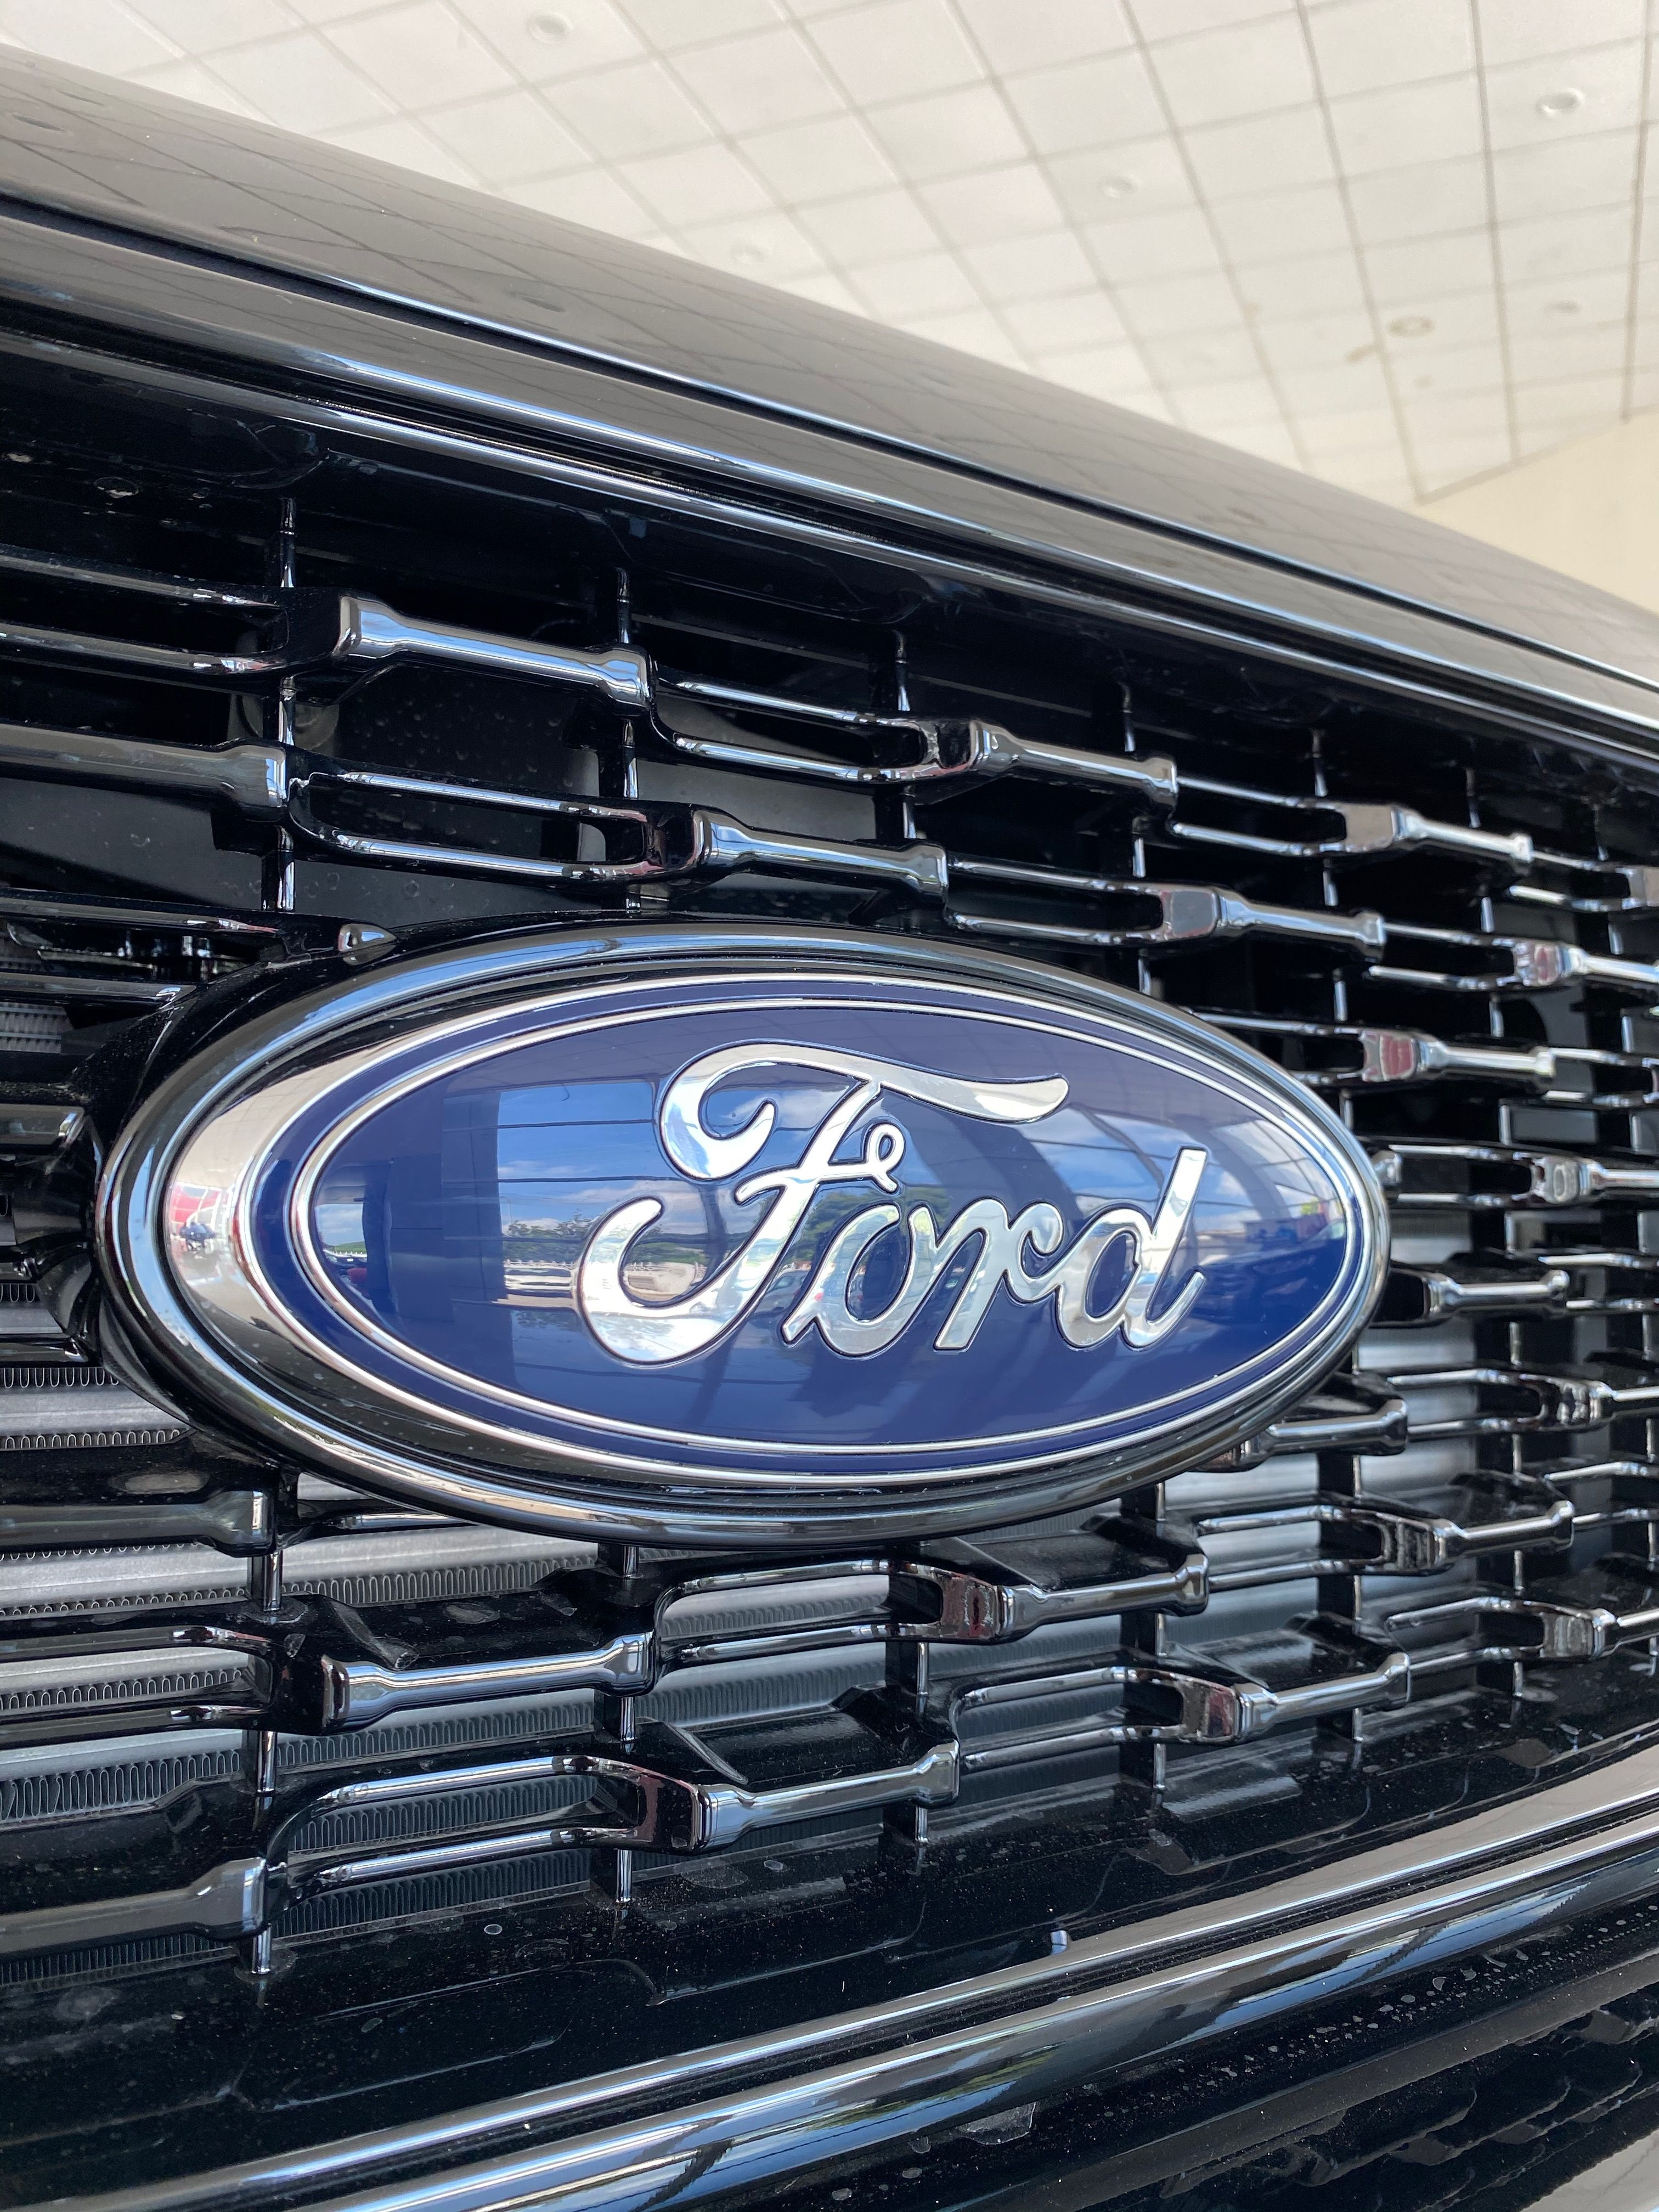 Ford Endeavour Sport 4wd Everest 41 Lakh Real Life Review In 2021 Ford Endeavour Ford Ford Motor Company